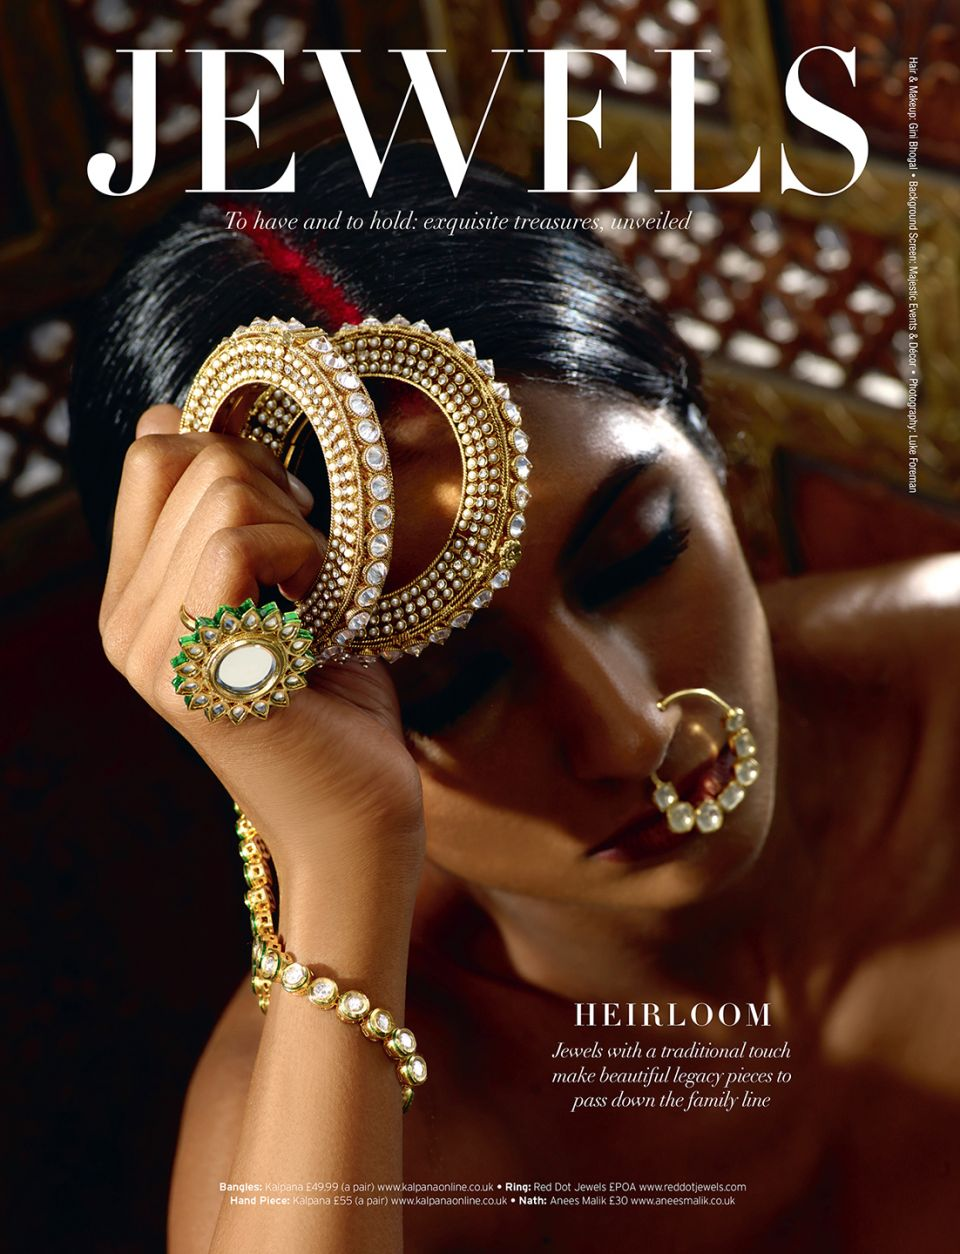 98-KW11 - Jewellery Feat low res w.jpg